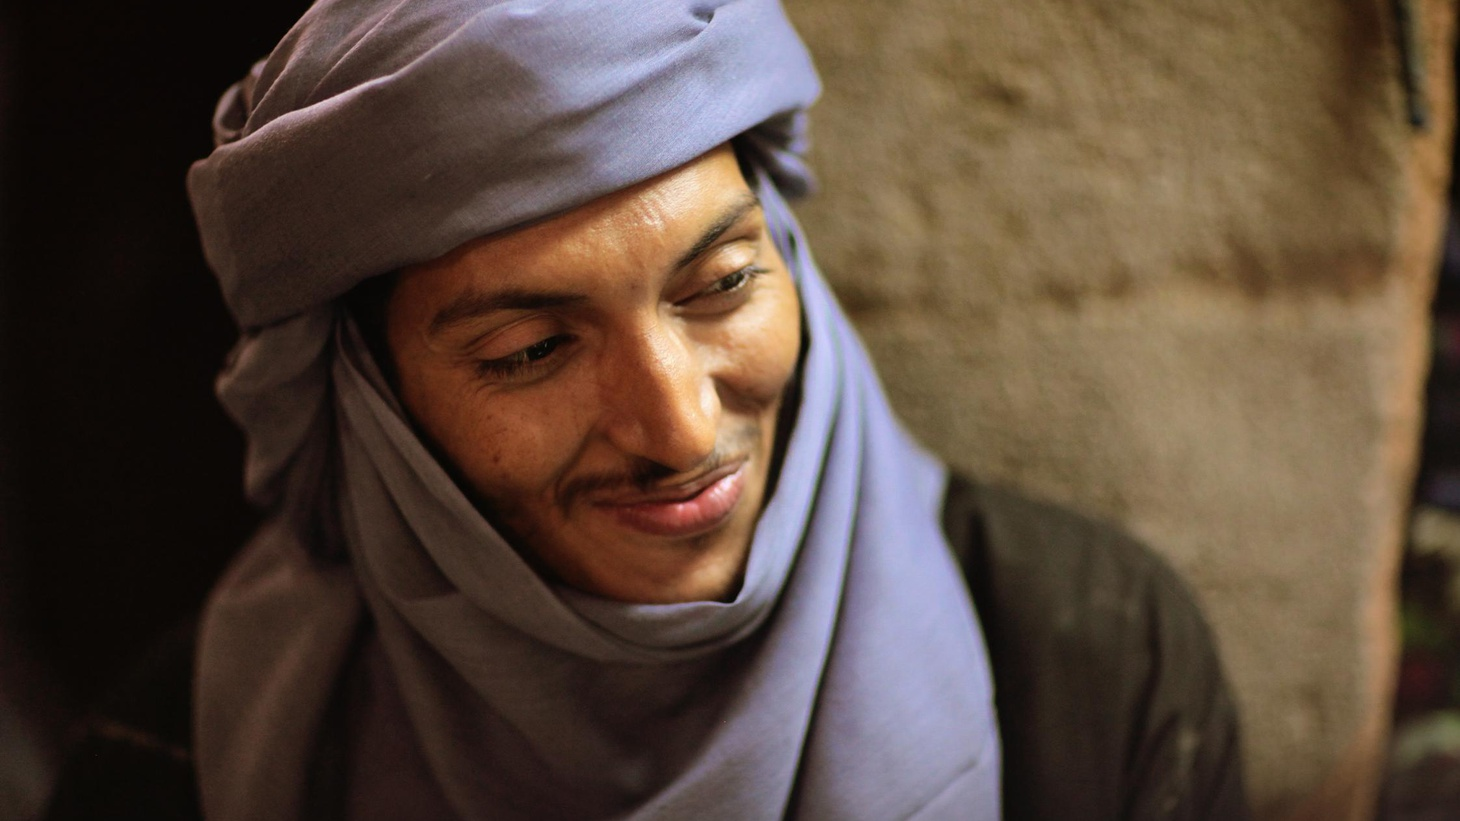 Tuareg singer and guitar wiz Bombino stops by Morning Becomes Eclectic before heading out to the Hollywood Bowl for KCRW's World Music Festival.